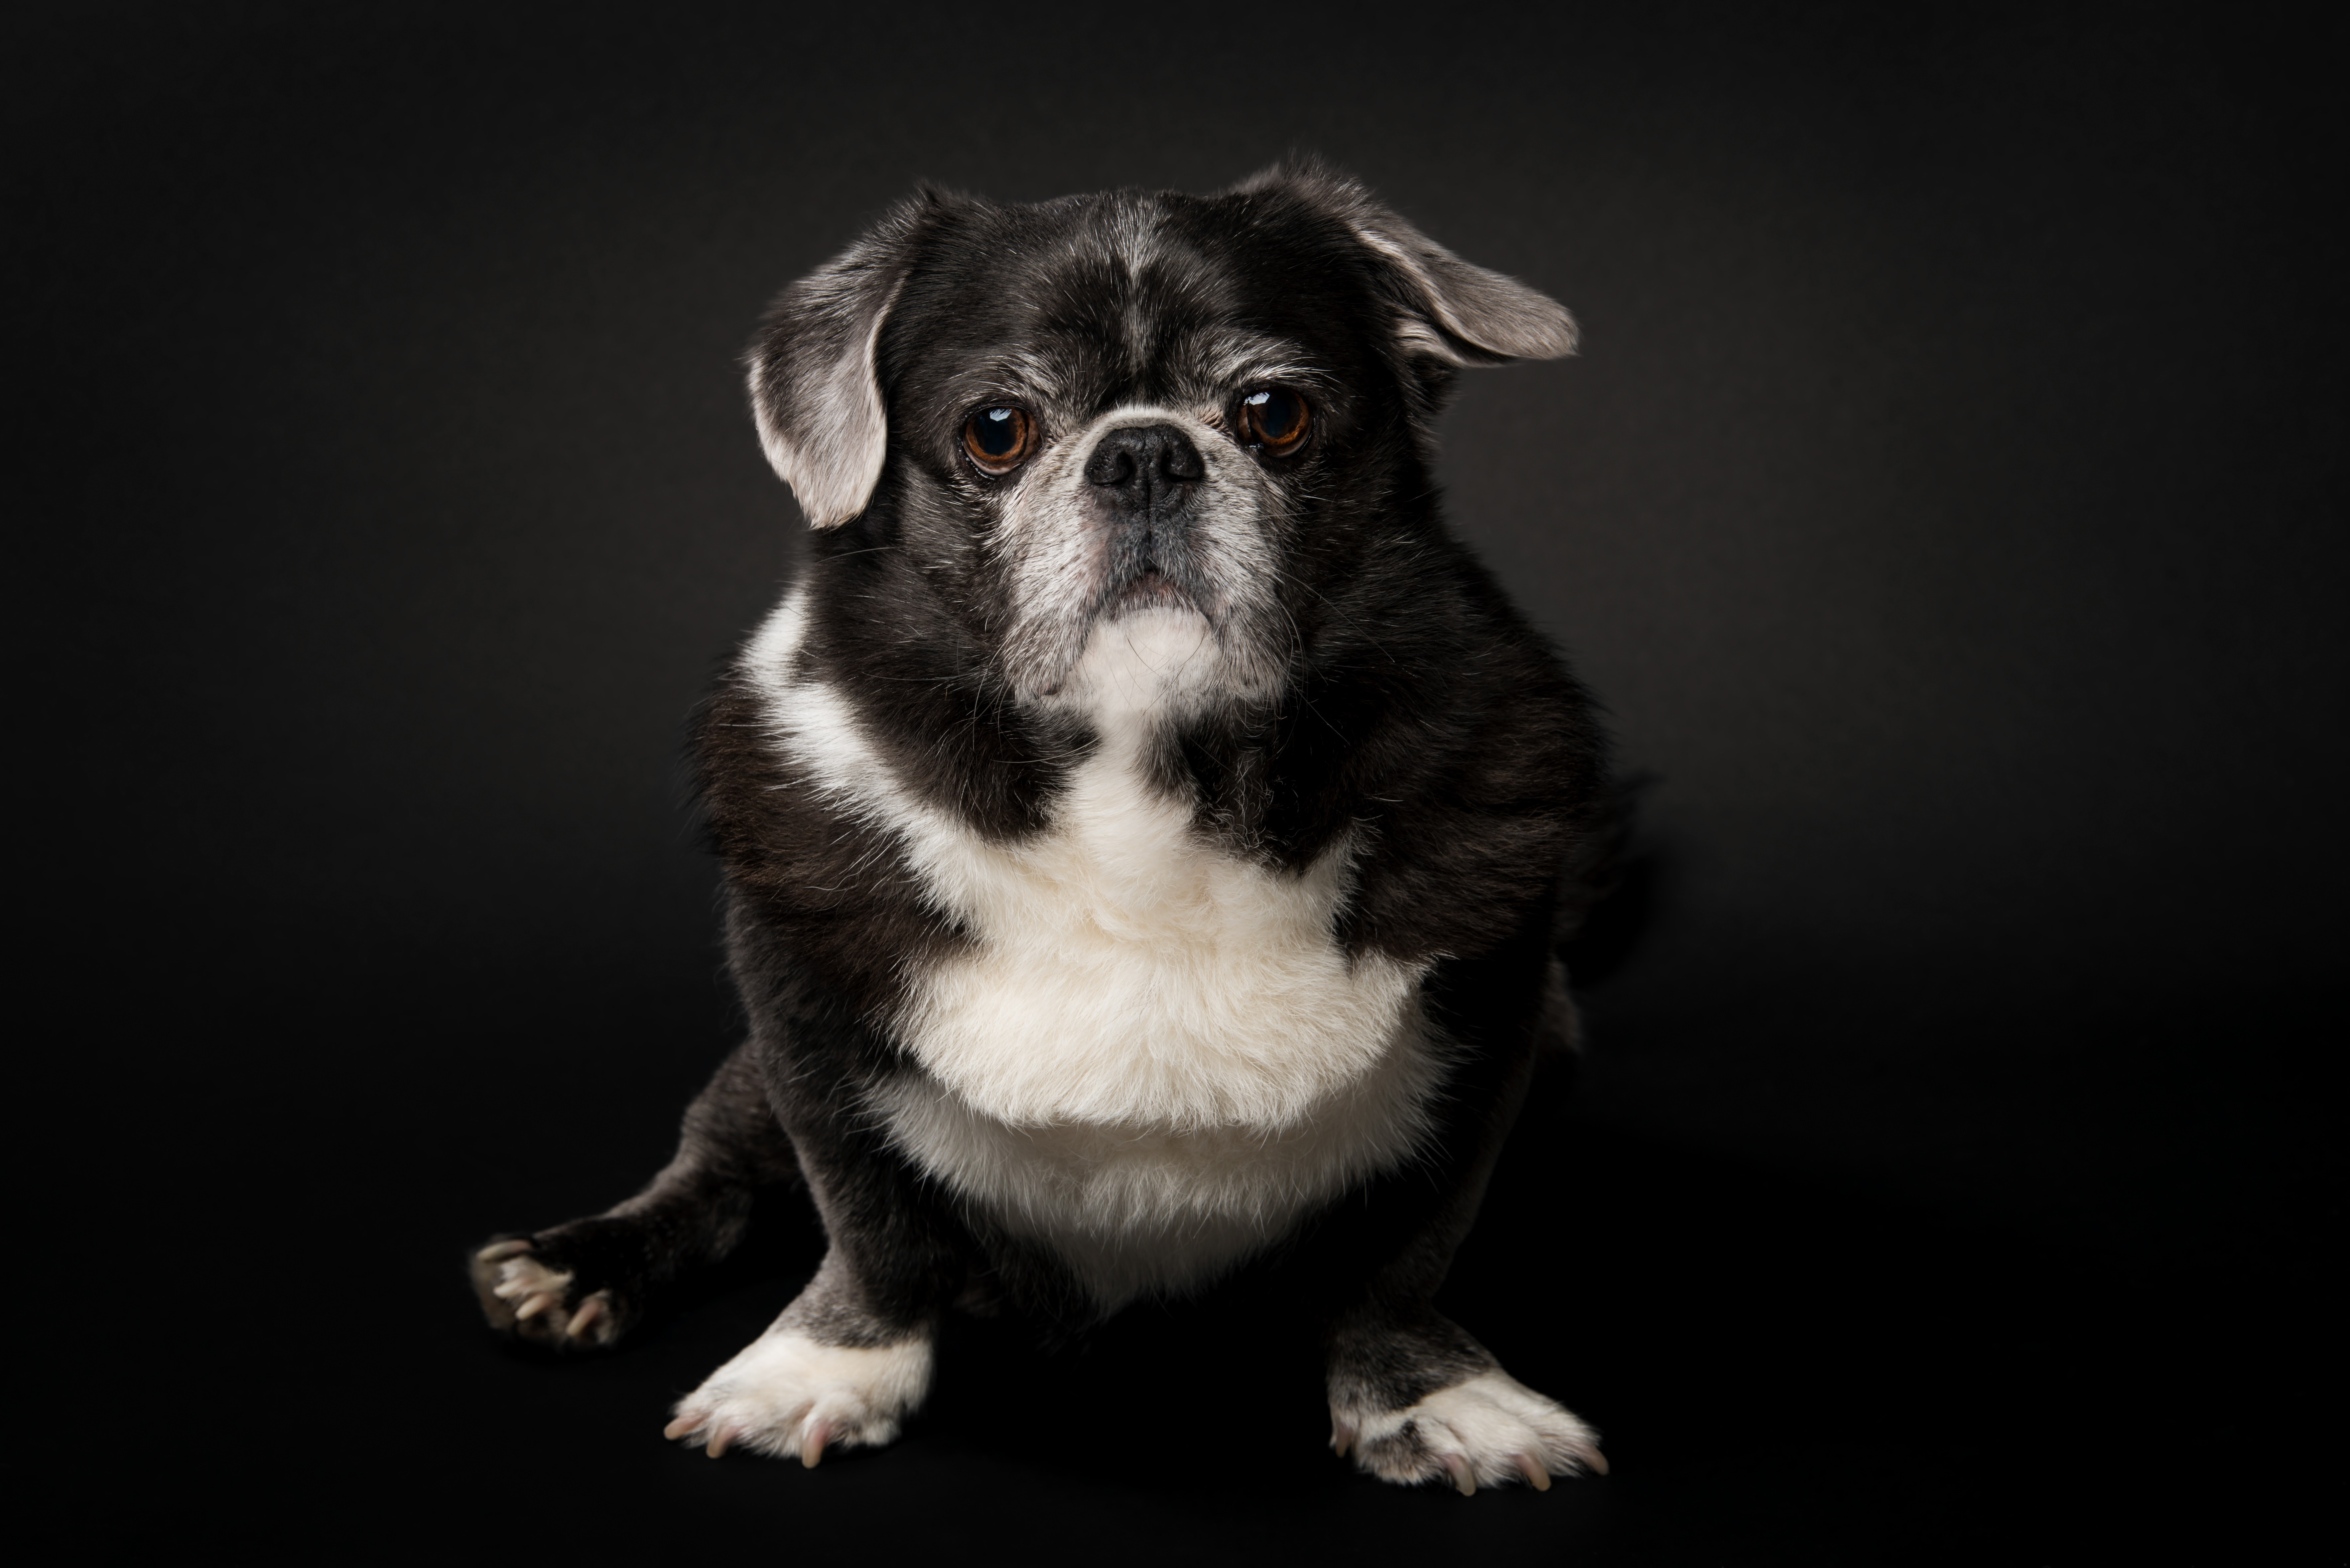 Puginese Mixed Dog Breed Pictures